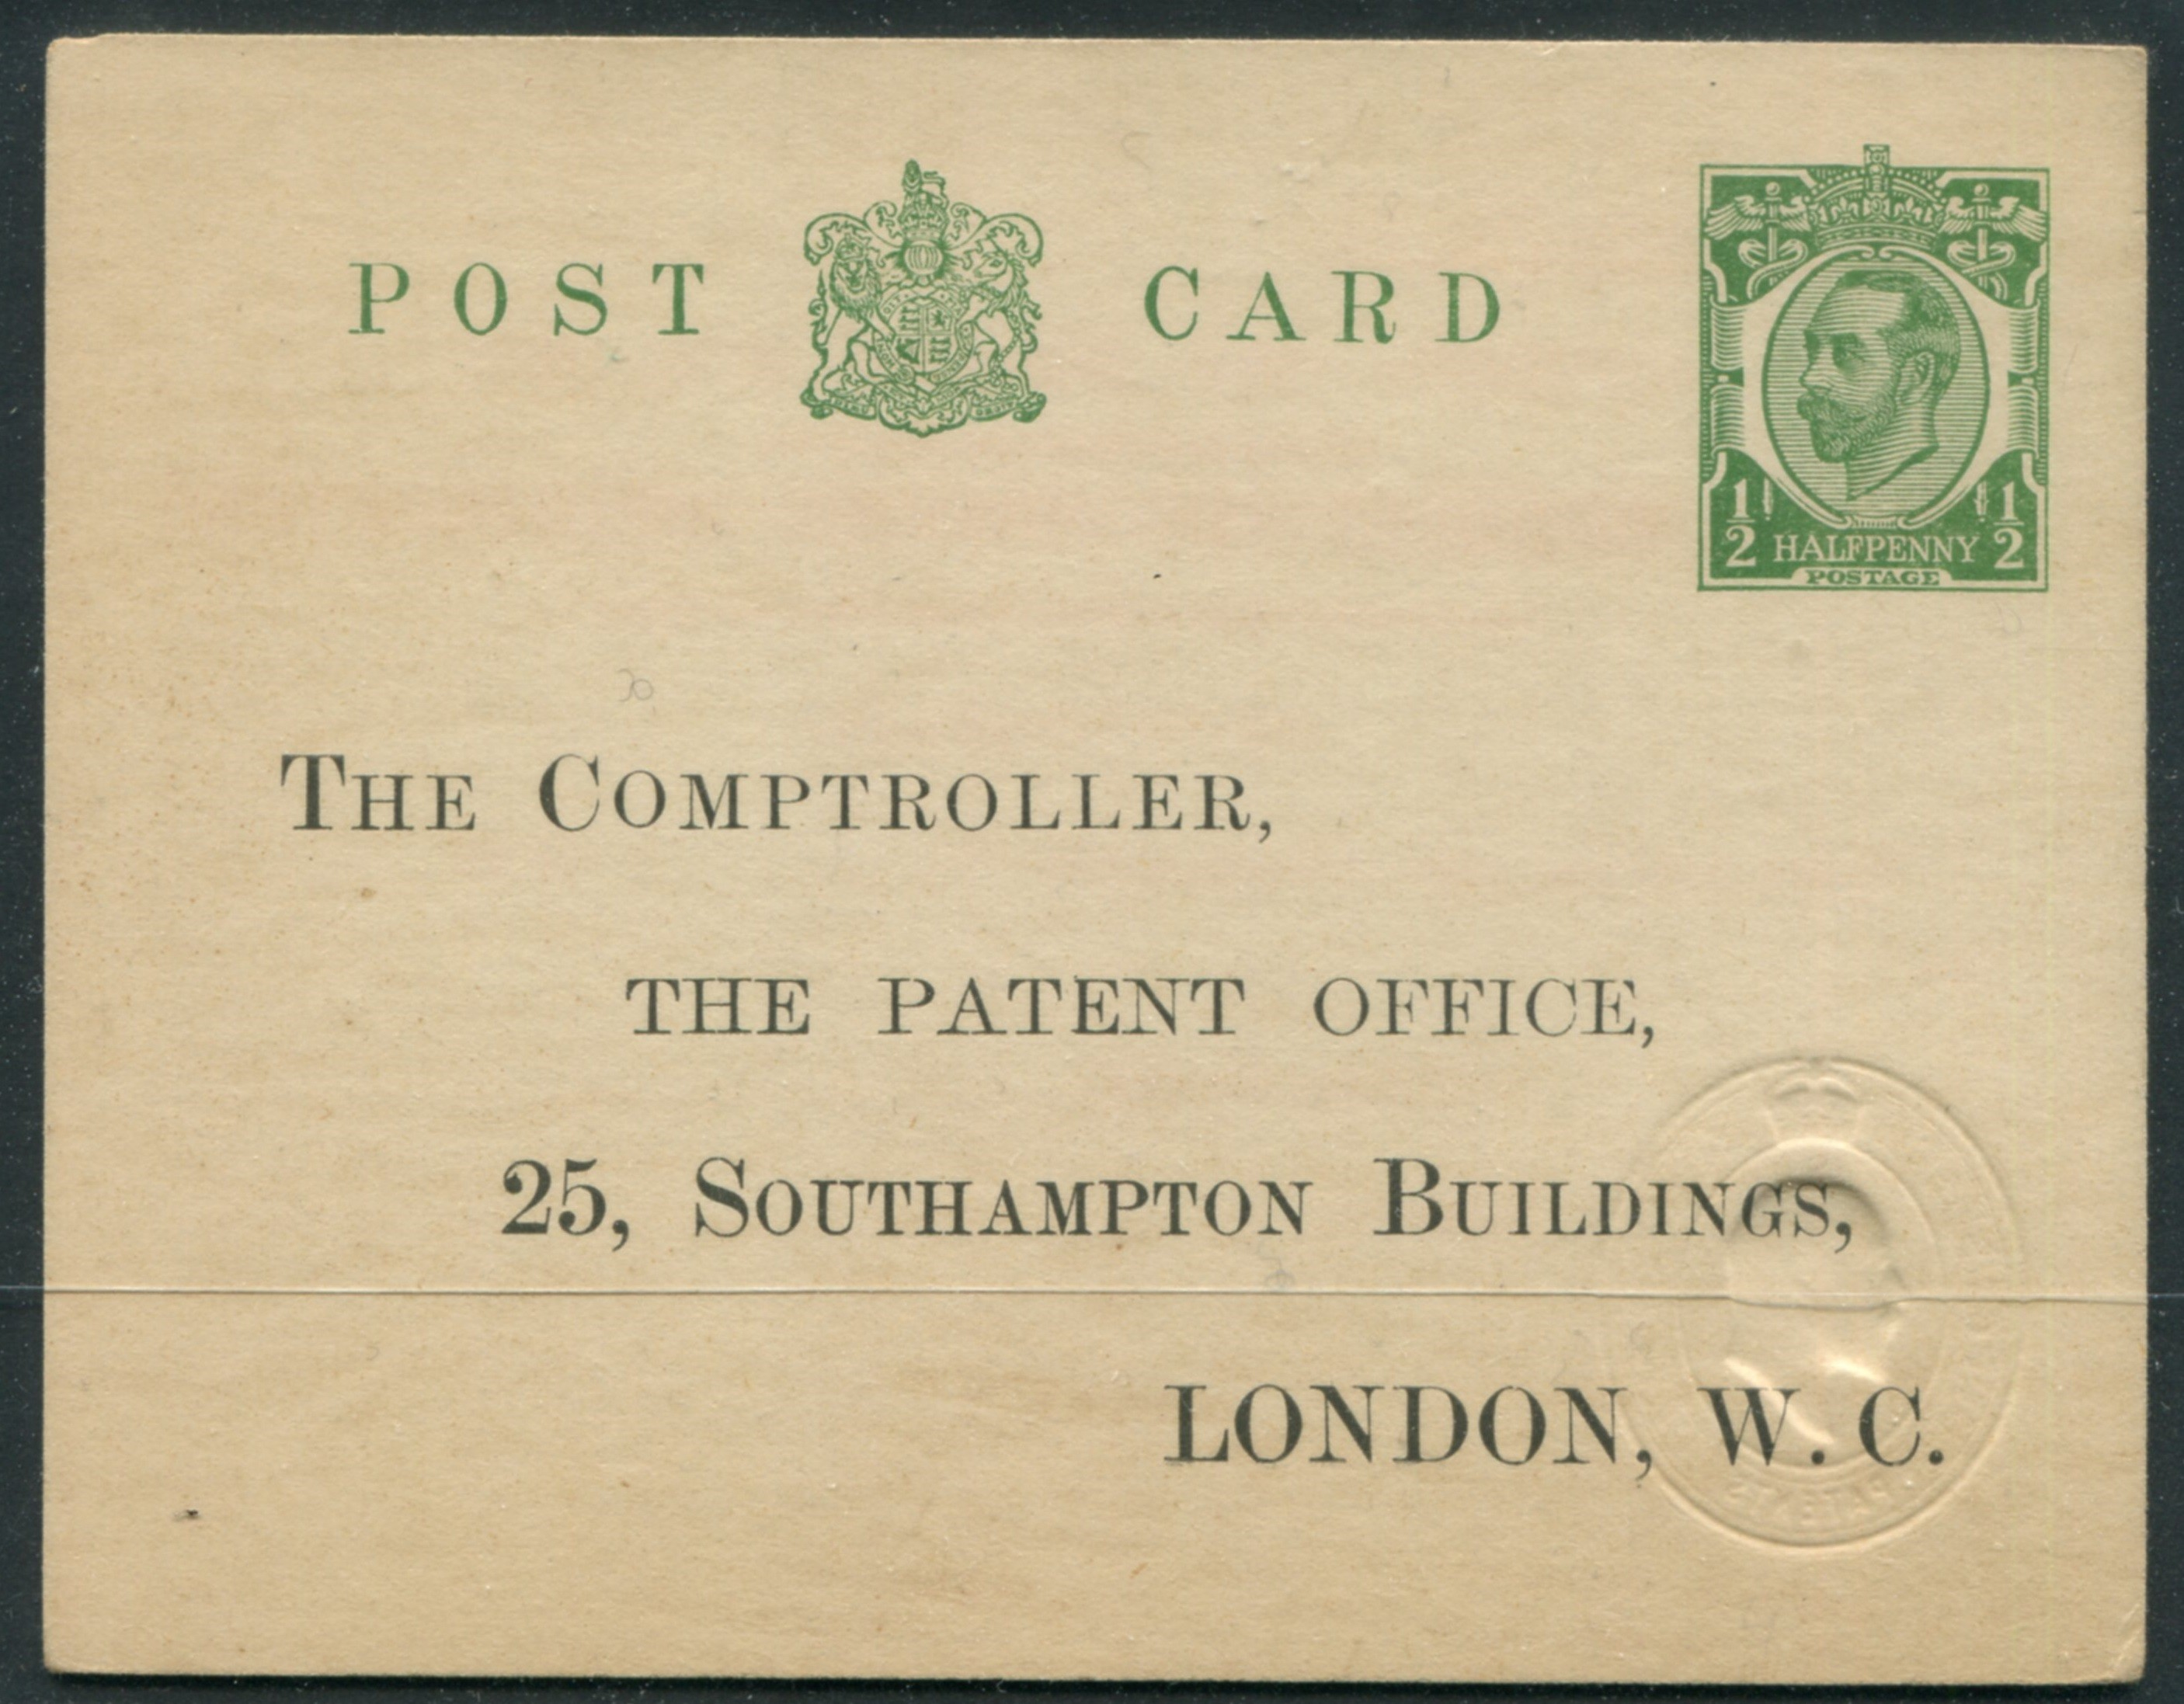 POSTAL STATIONERY POST CARD PATENT FORM KGV - IMPRINTED & EMBOSSED REVENUE STAMP - Image 2 of 2